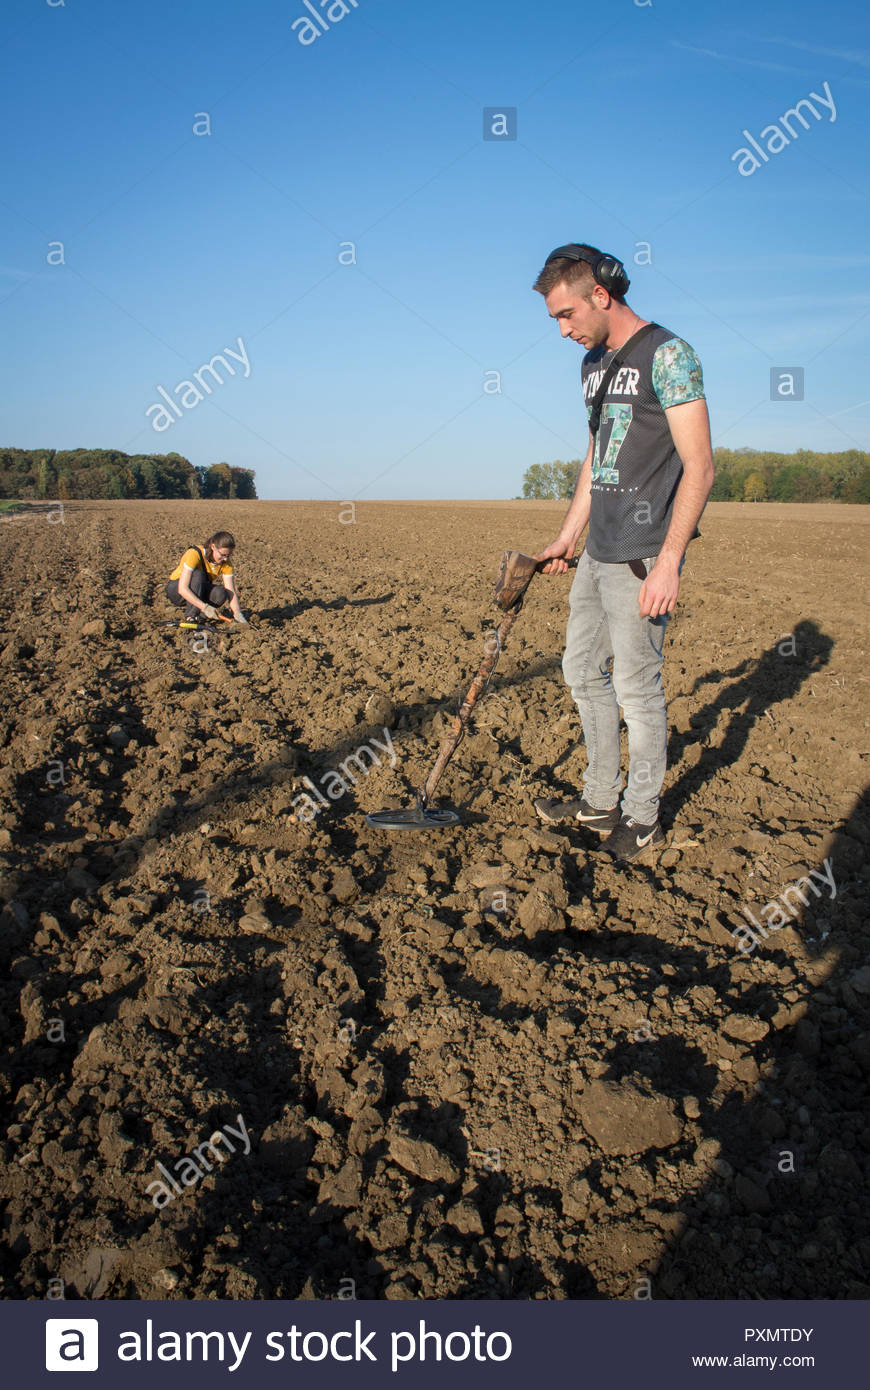 Mine detector enthusiasts Jeffrey Antonissen with his girl friend Tonje Brack scouring the ploughed fields outside Ypres, Belgium - Stock Image